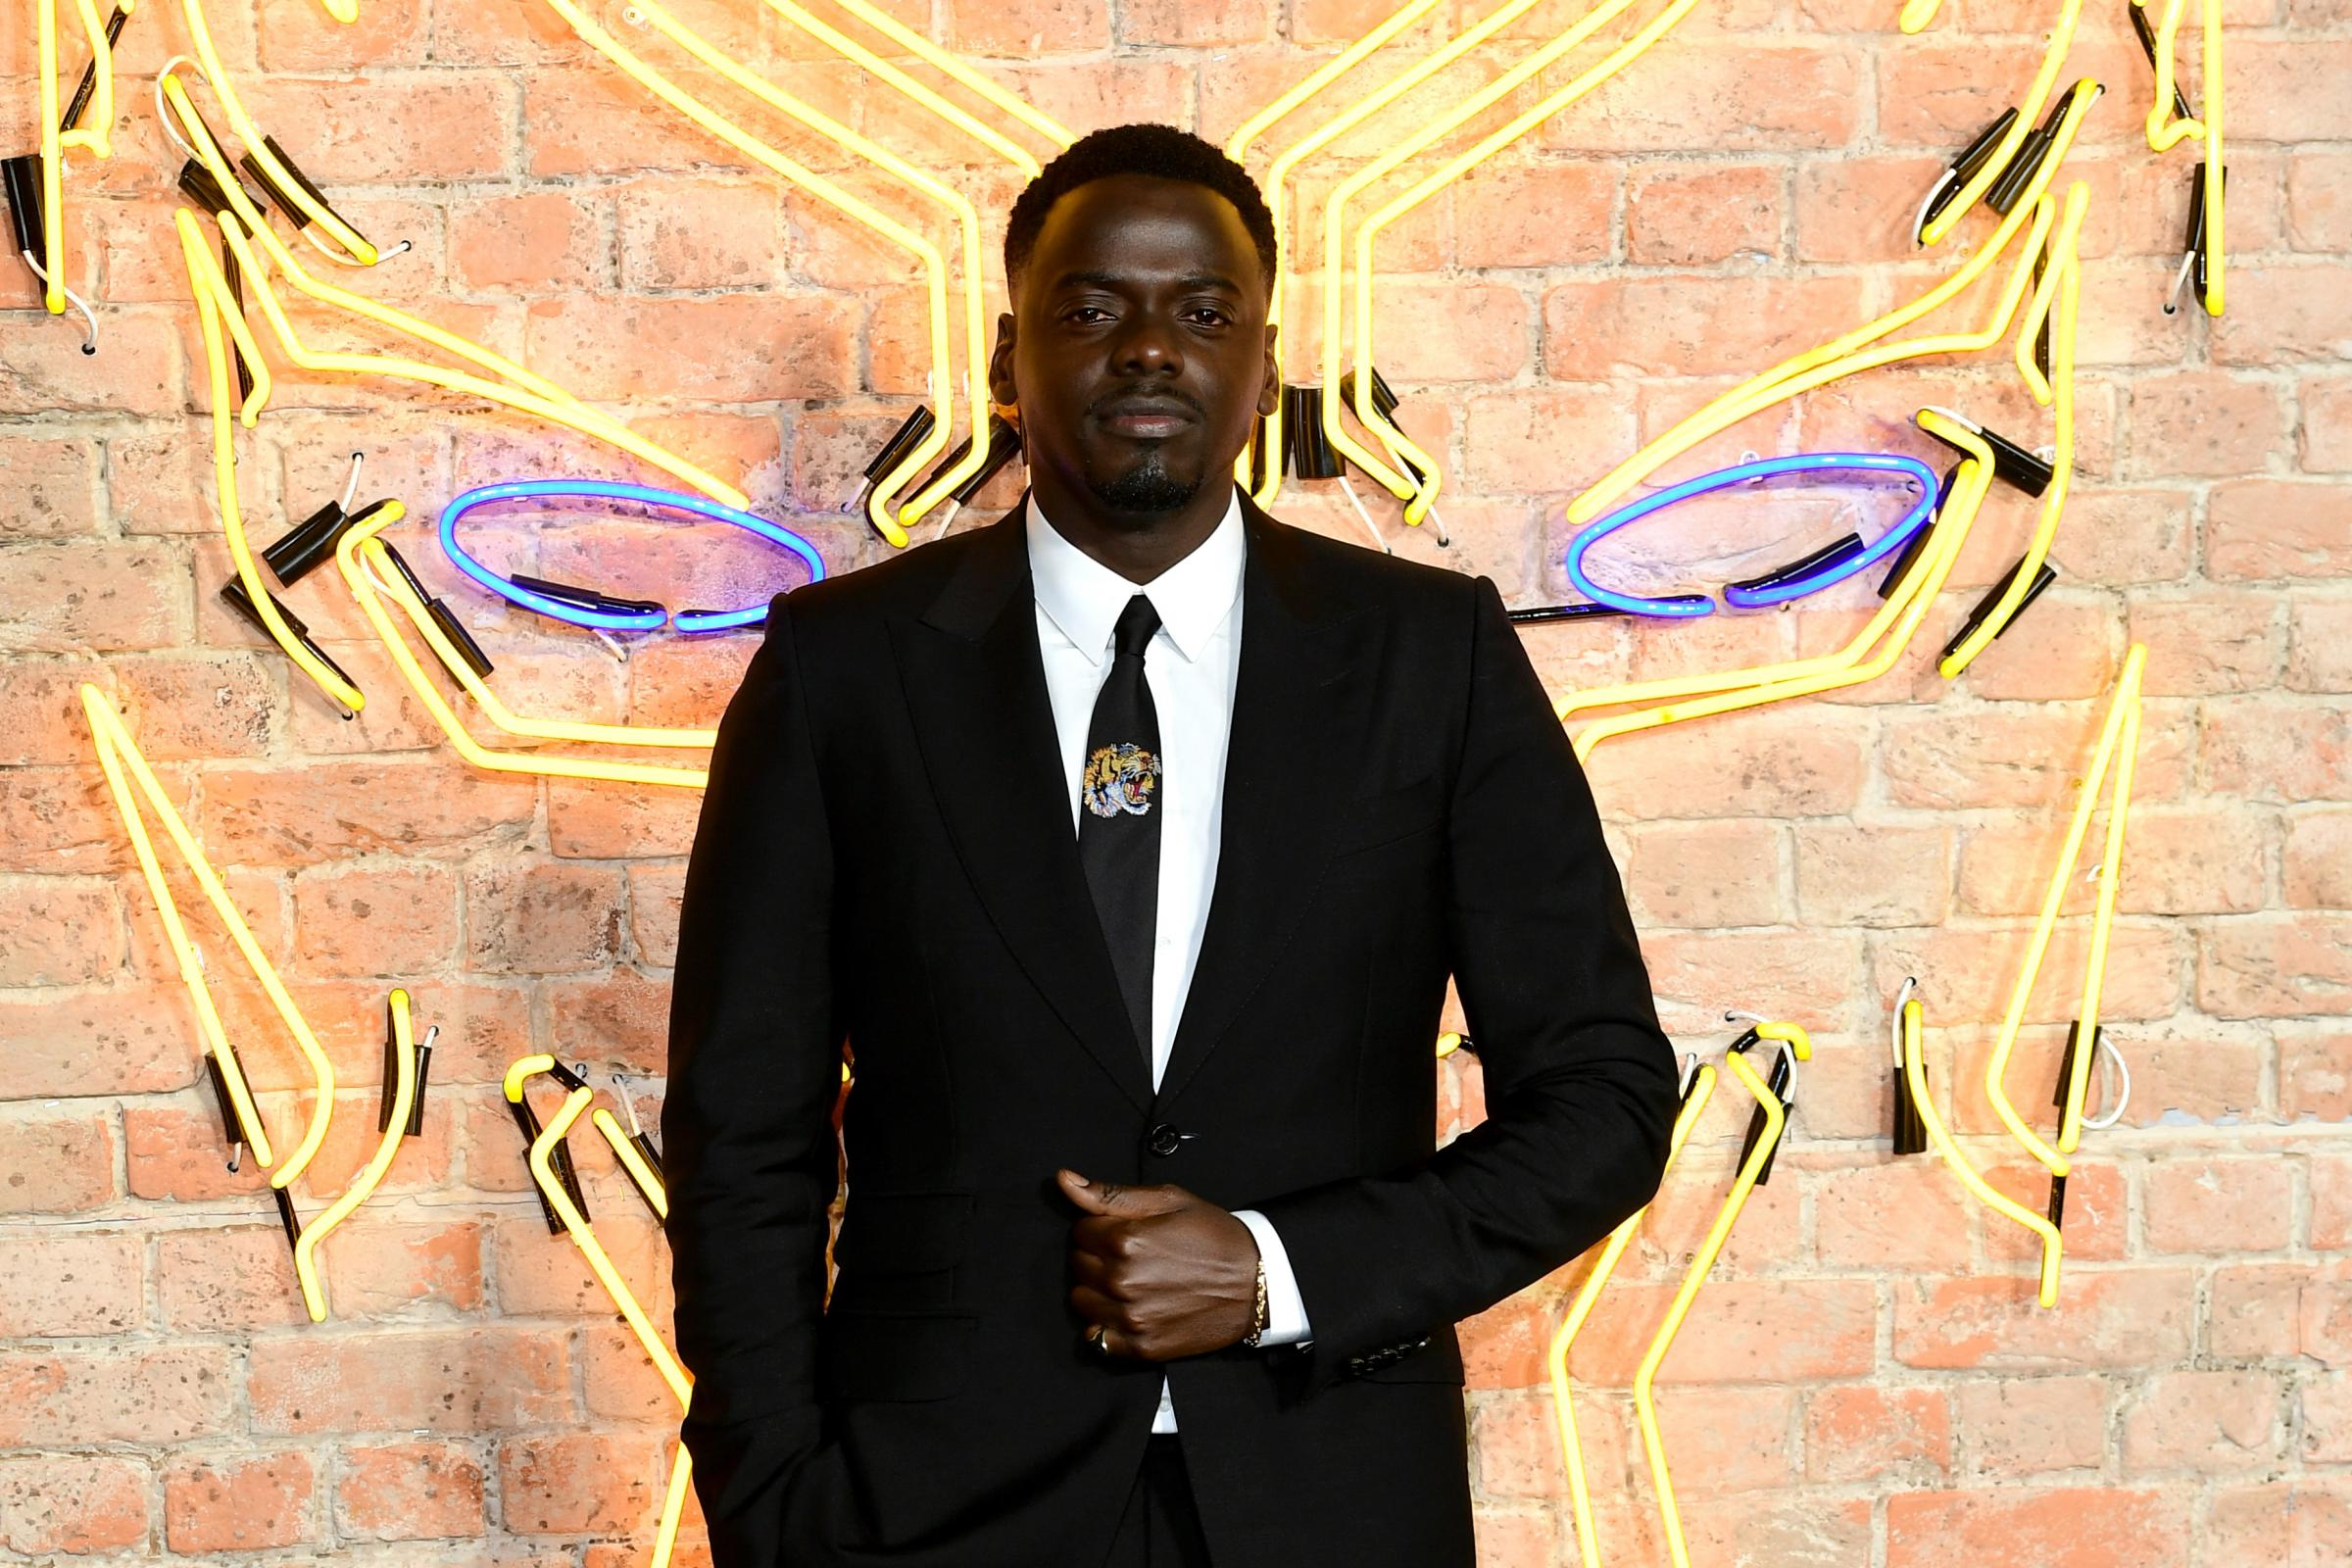 Daniel Kaluuya was speaking at Black Panther's European premiere on Thursday night (Ian West/PA)